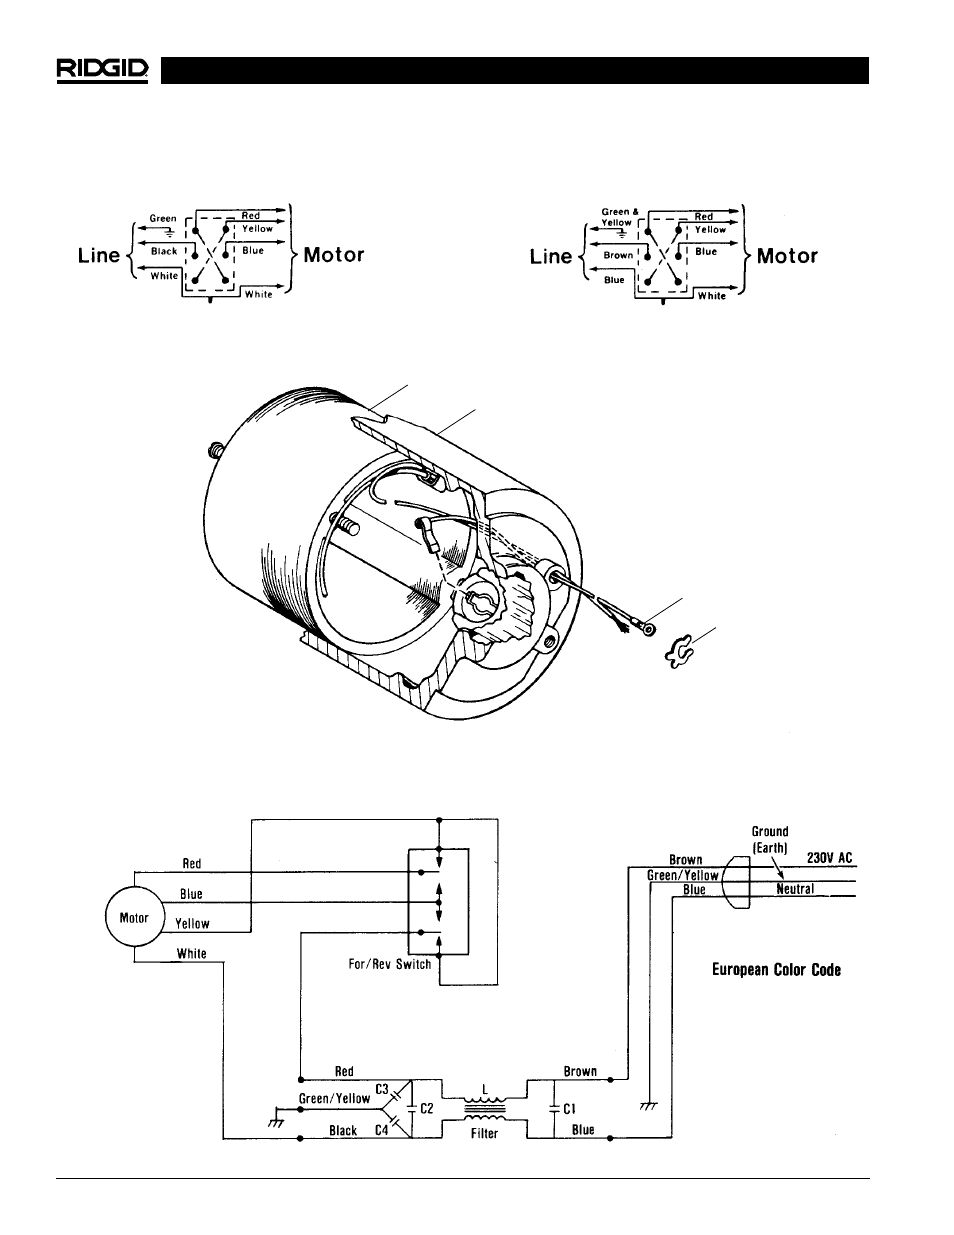 installation of brush lead wires wiring schematic 230v with rh manualsdir com Atwood Water Heater Wiring Diagrams Single Switch Atwood Water Heater Wiring Diagrams Single Switch